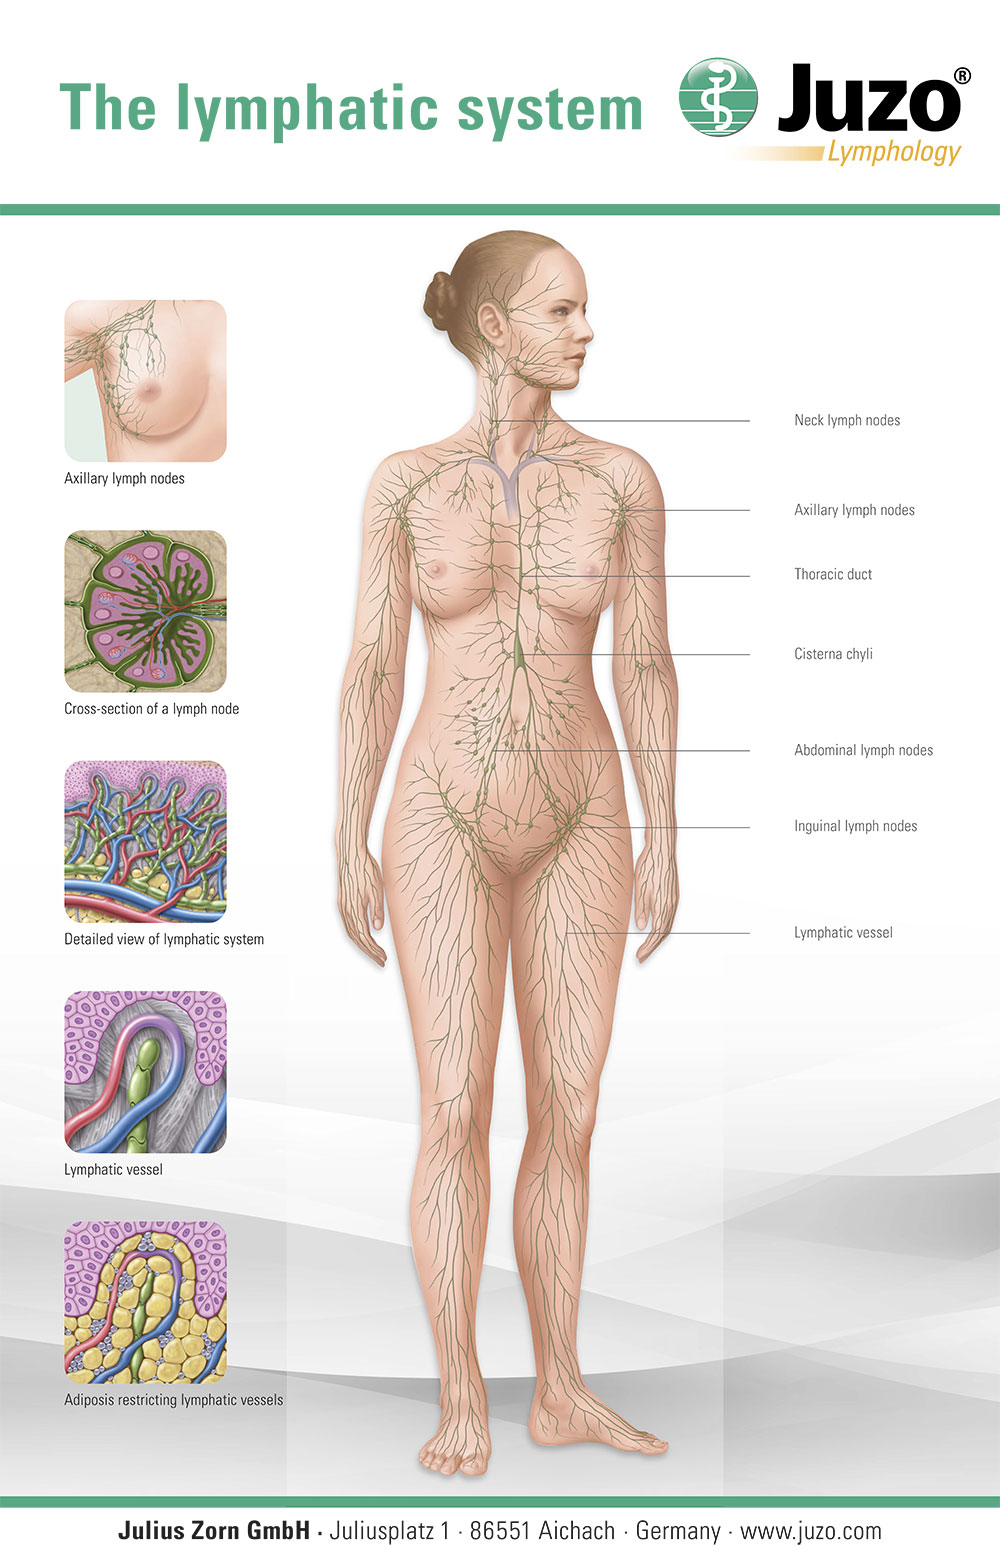 The Lymphatic system image. Source: Juzo